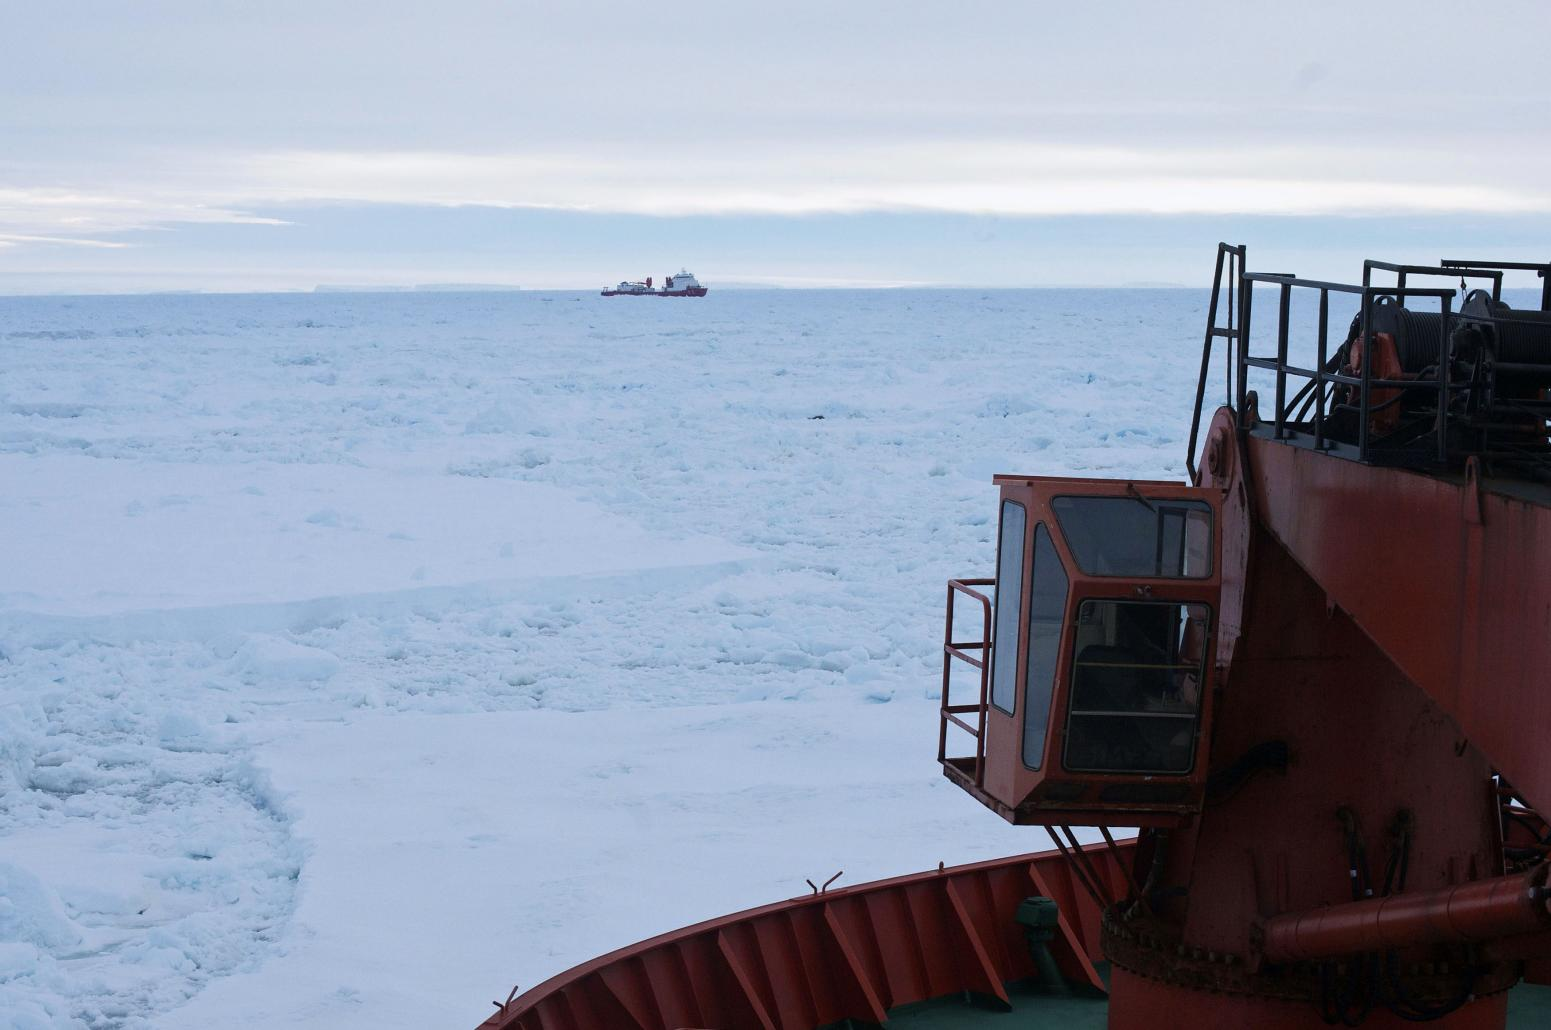 Handout shows the Chinese Xue Long icebreaker, as seen from Australia's Antarctic supply ship, the Aurora Australis, sitting in an ice pack unable to get through to the MV Akademik Shokalskiy, in East Antarctica